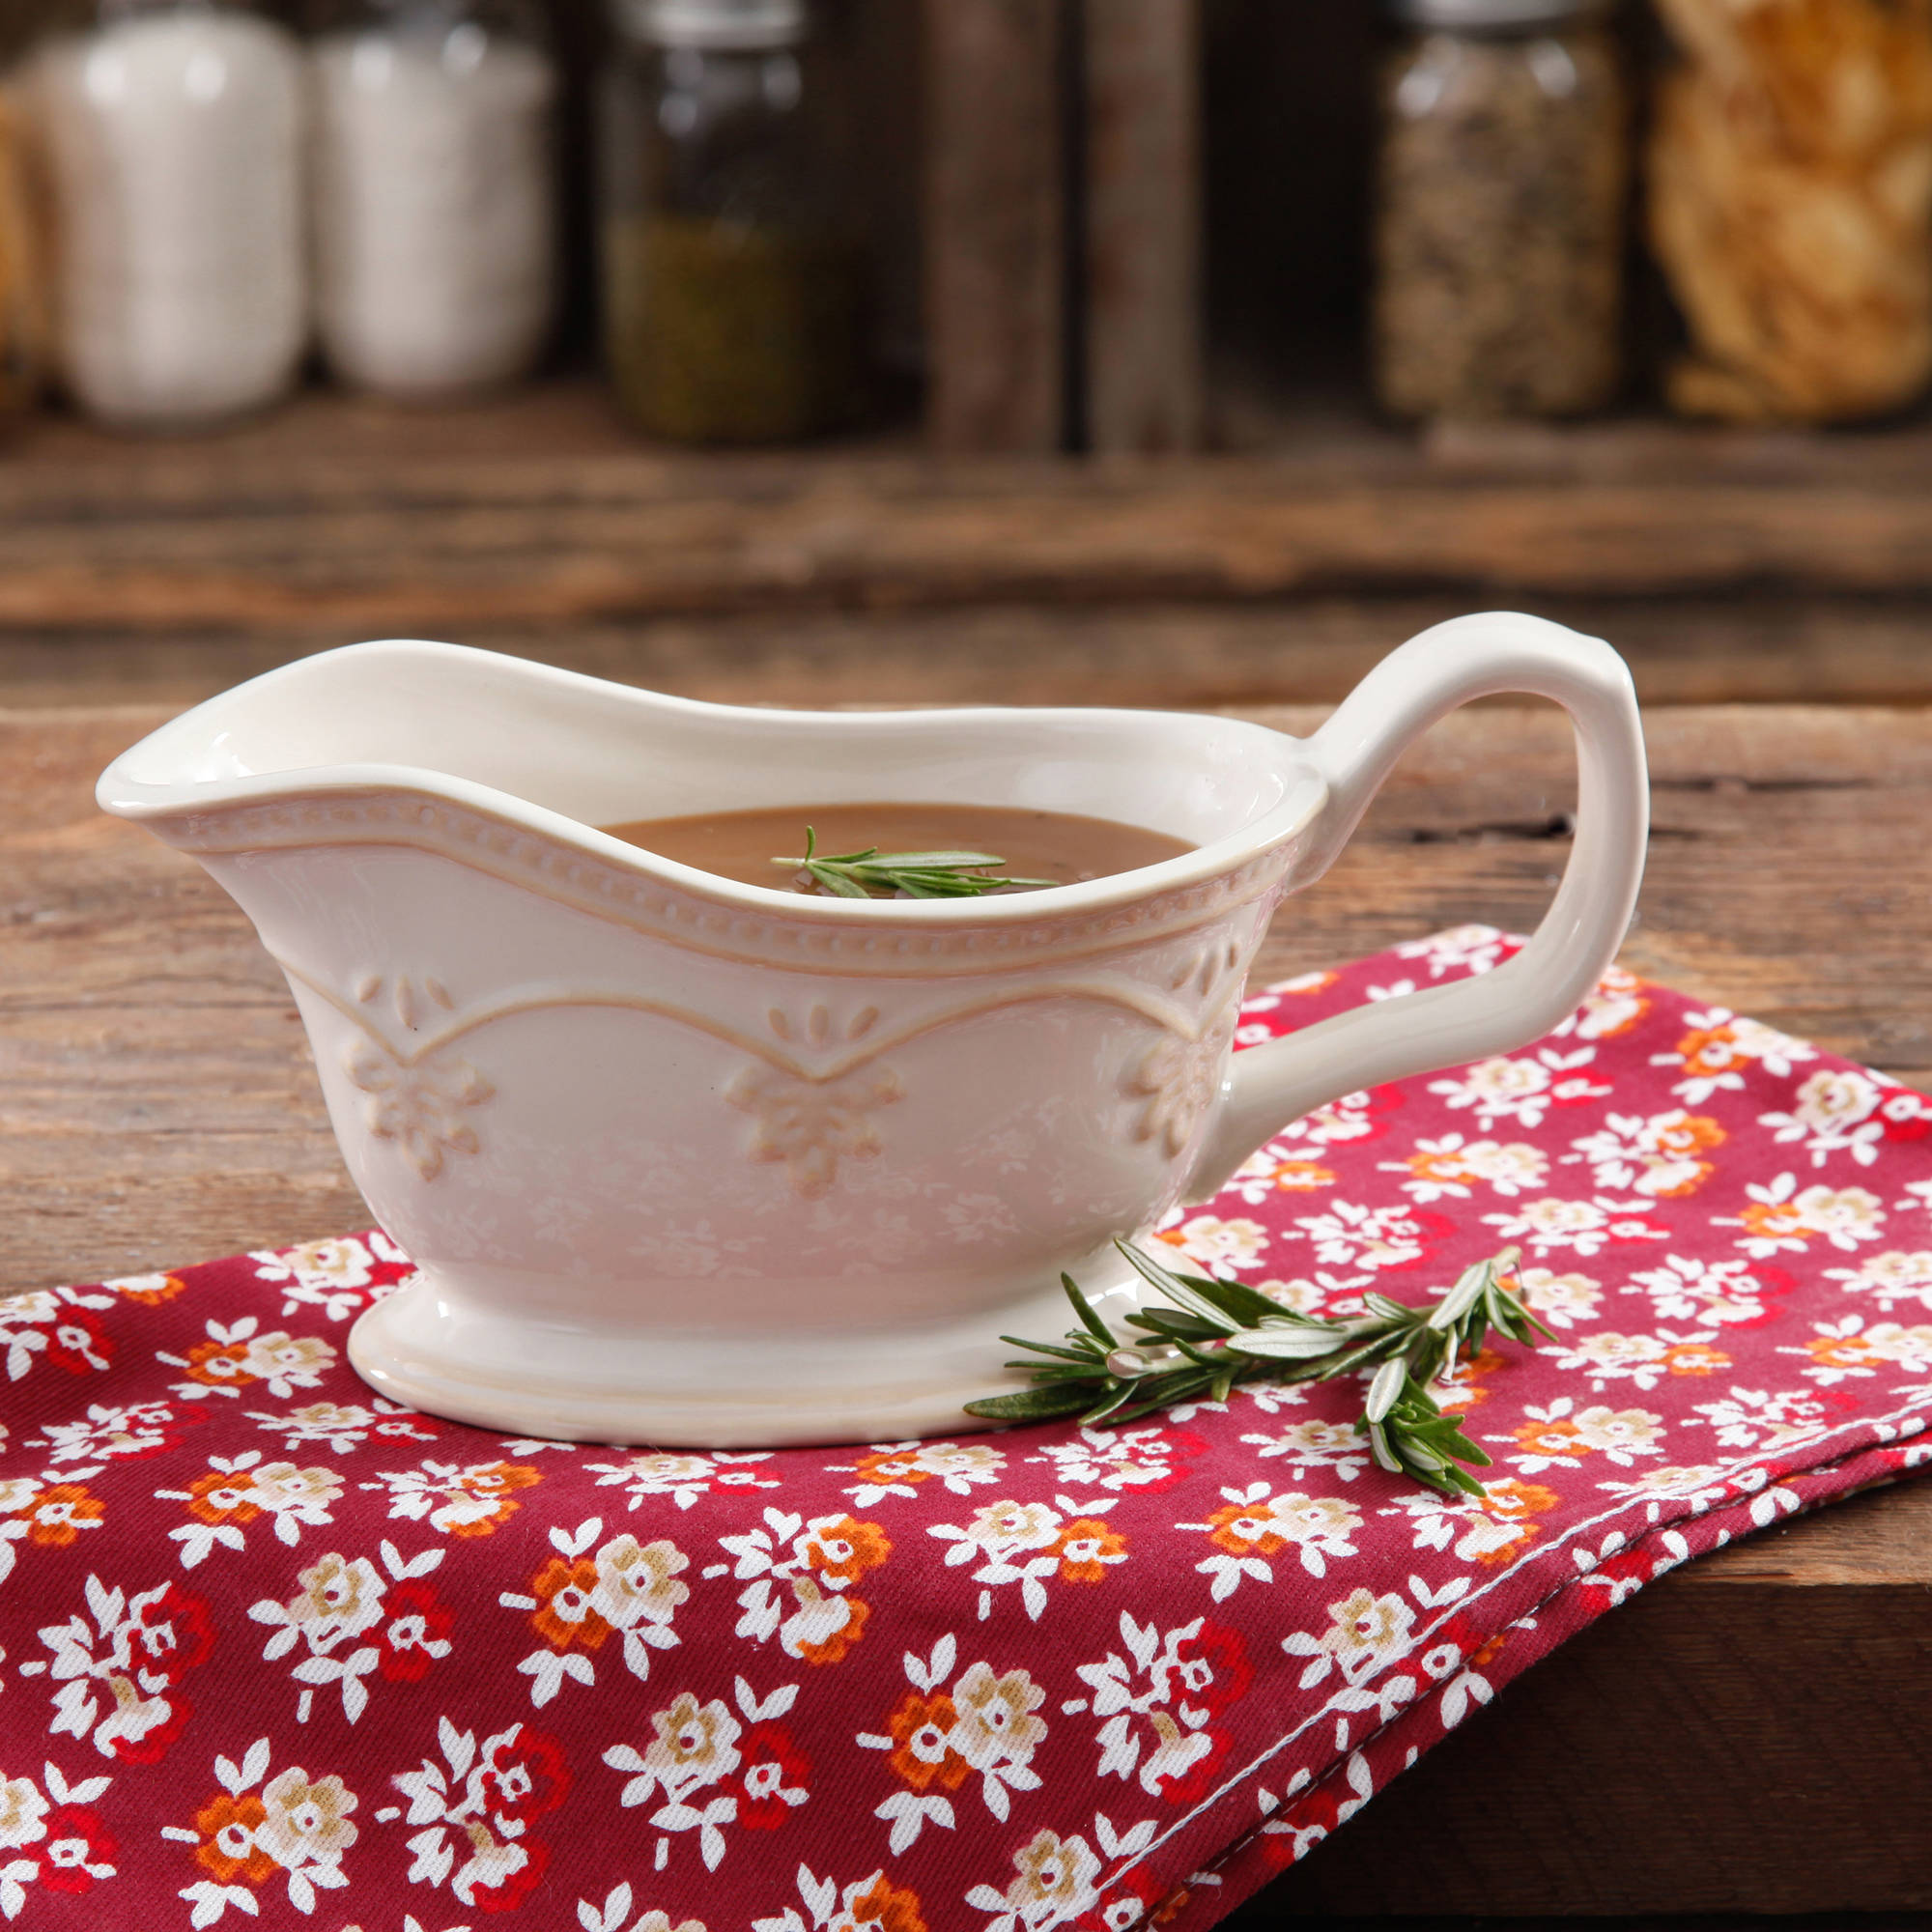 The Pioneer Woman Farmhouse Lace Linen Gravy/Sauce Boat